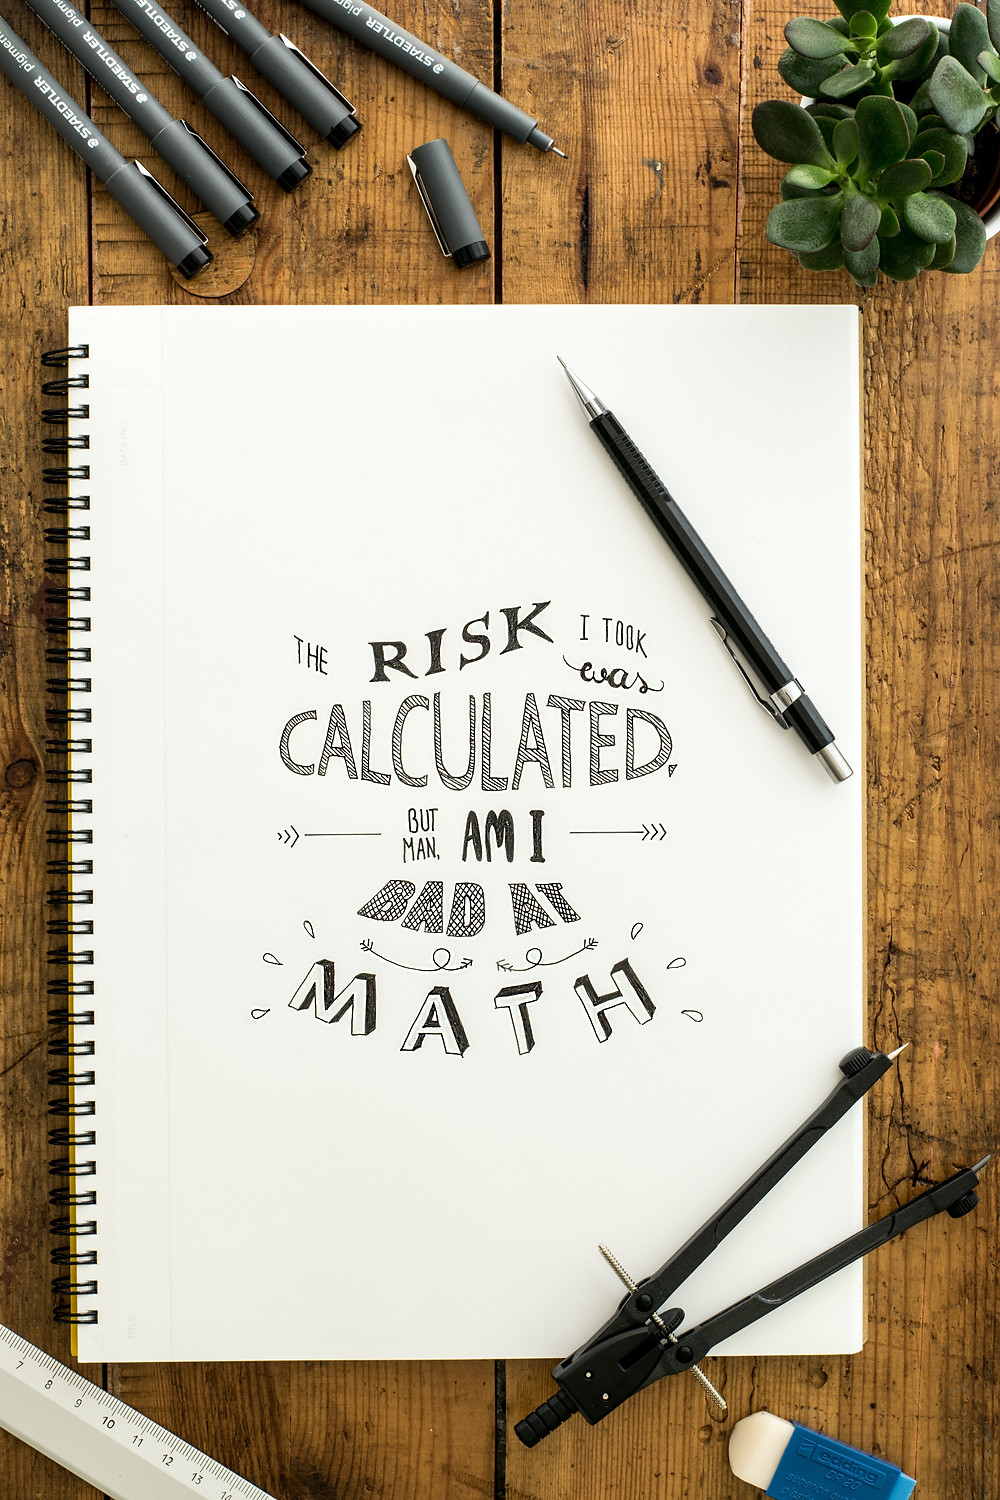 """A journal with a covert art based on """"calculated risk"""" is featured in a still photograph."""